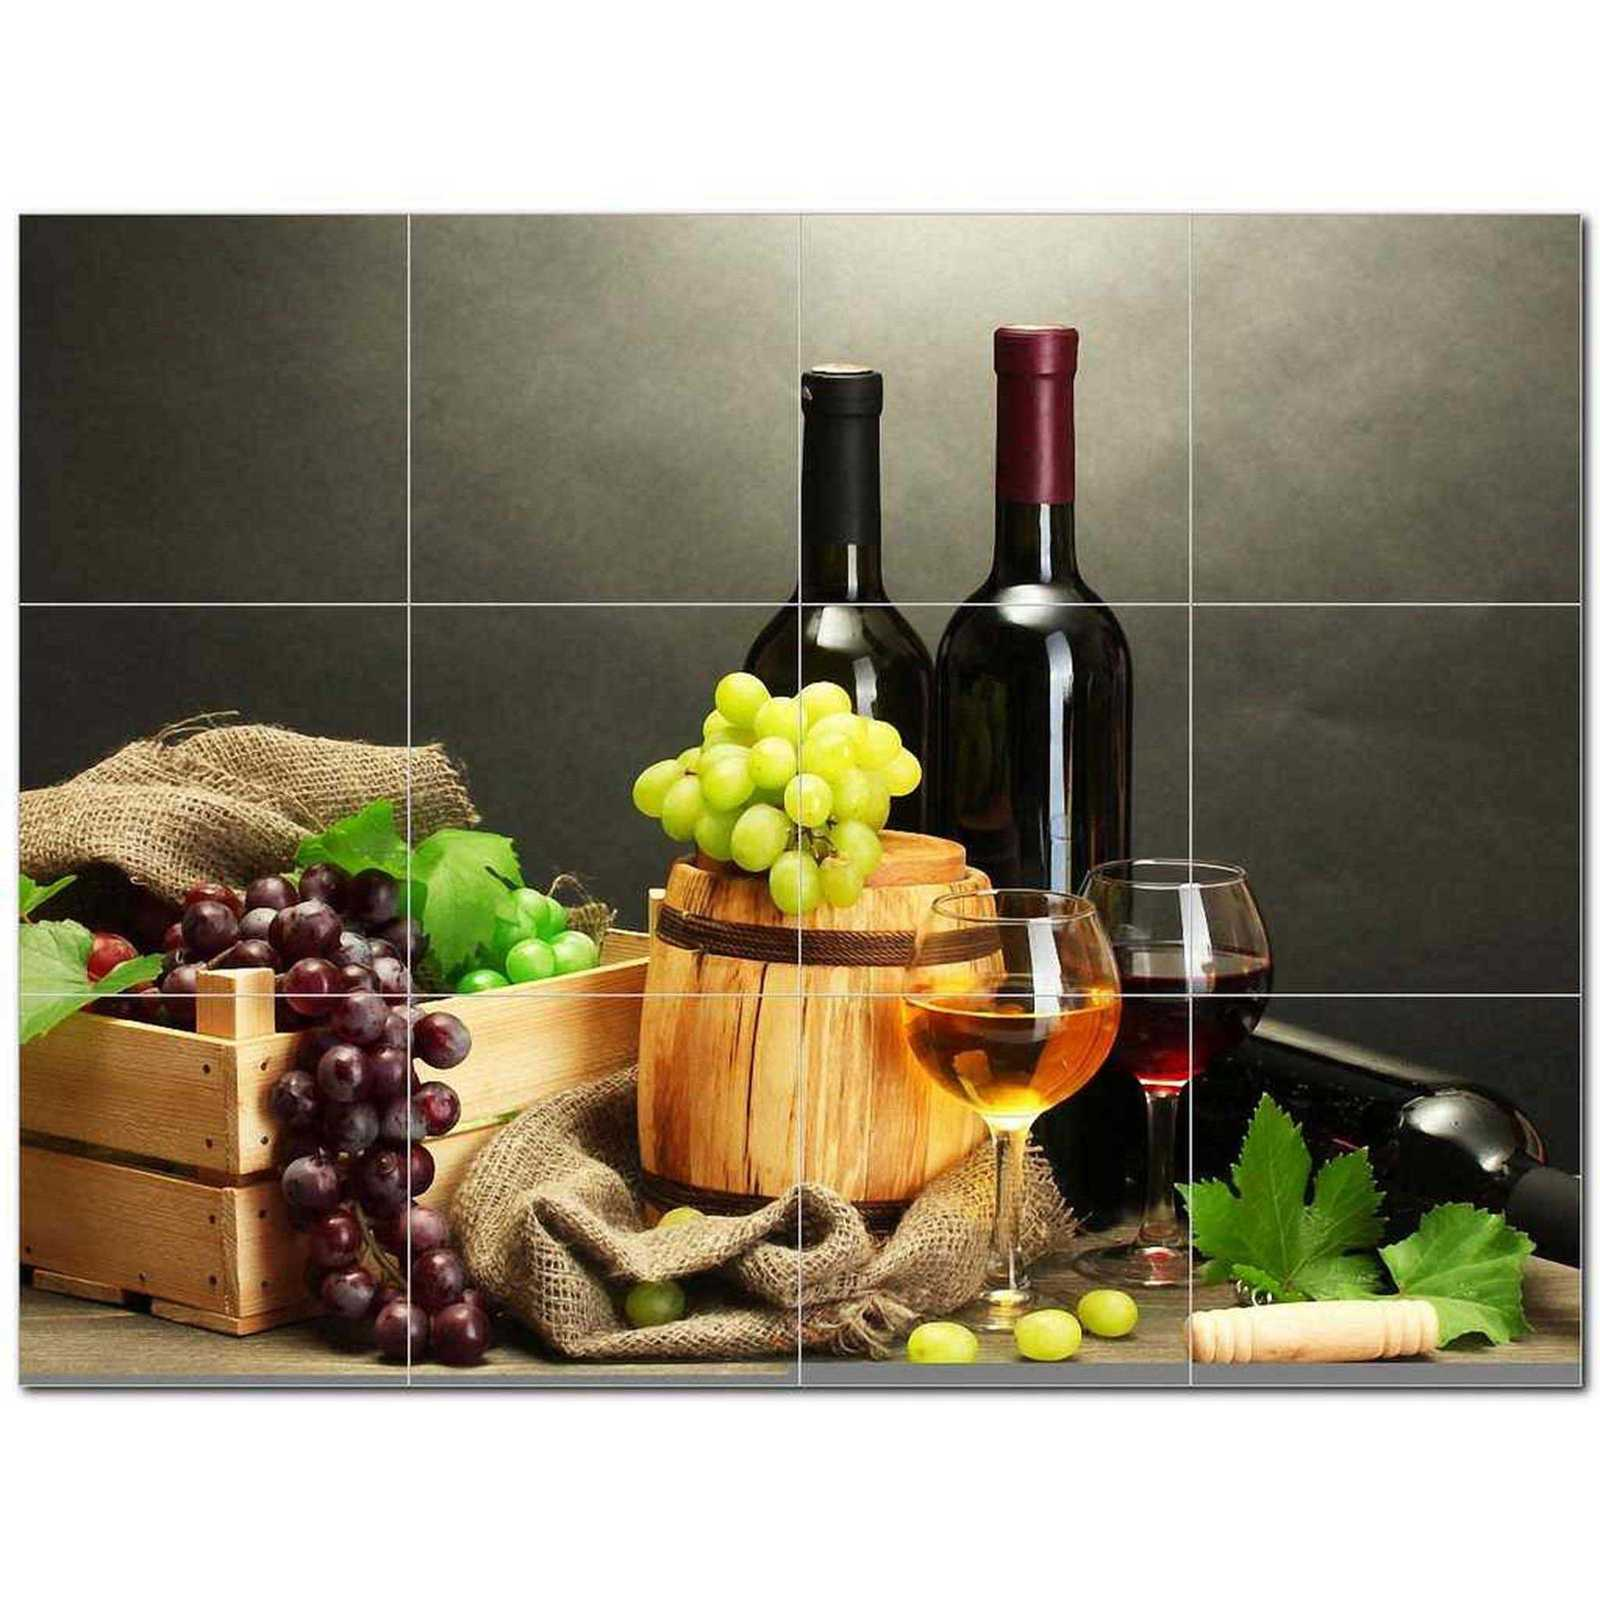 Primary image for Wine Grapes Ceramic Tile Mural Kitchen Backsplash Bathroom Shower BAZ406358